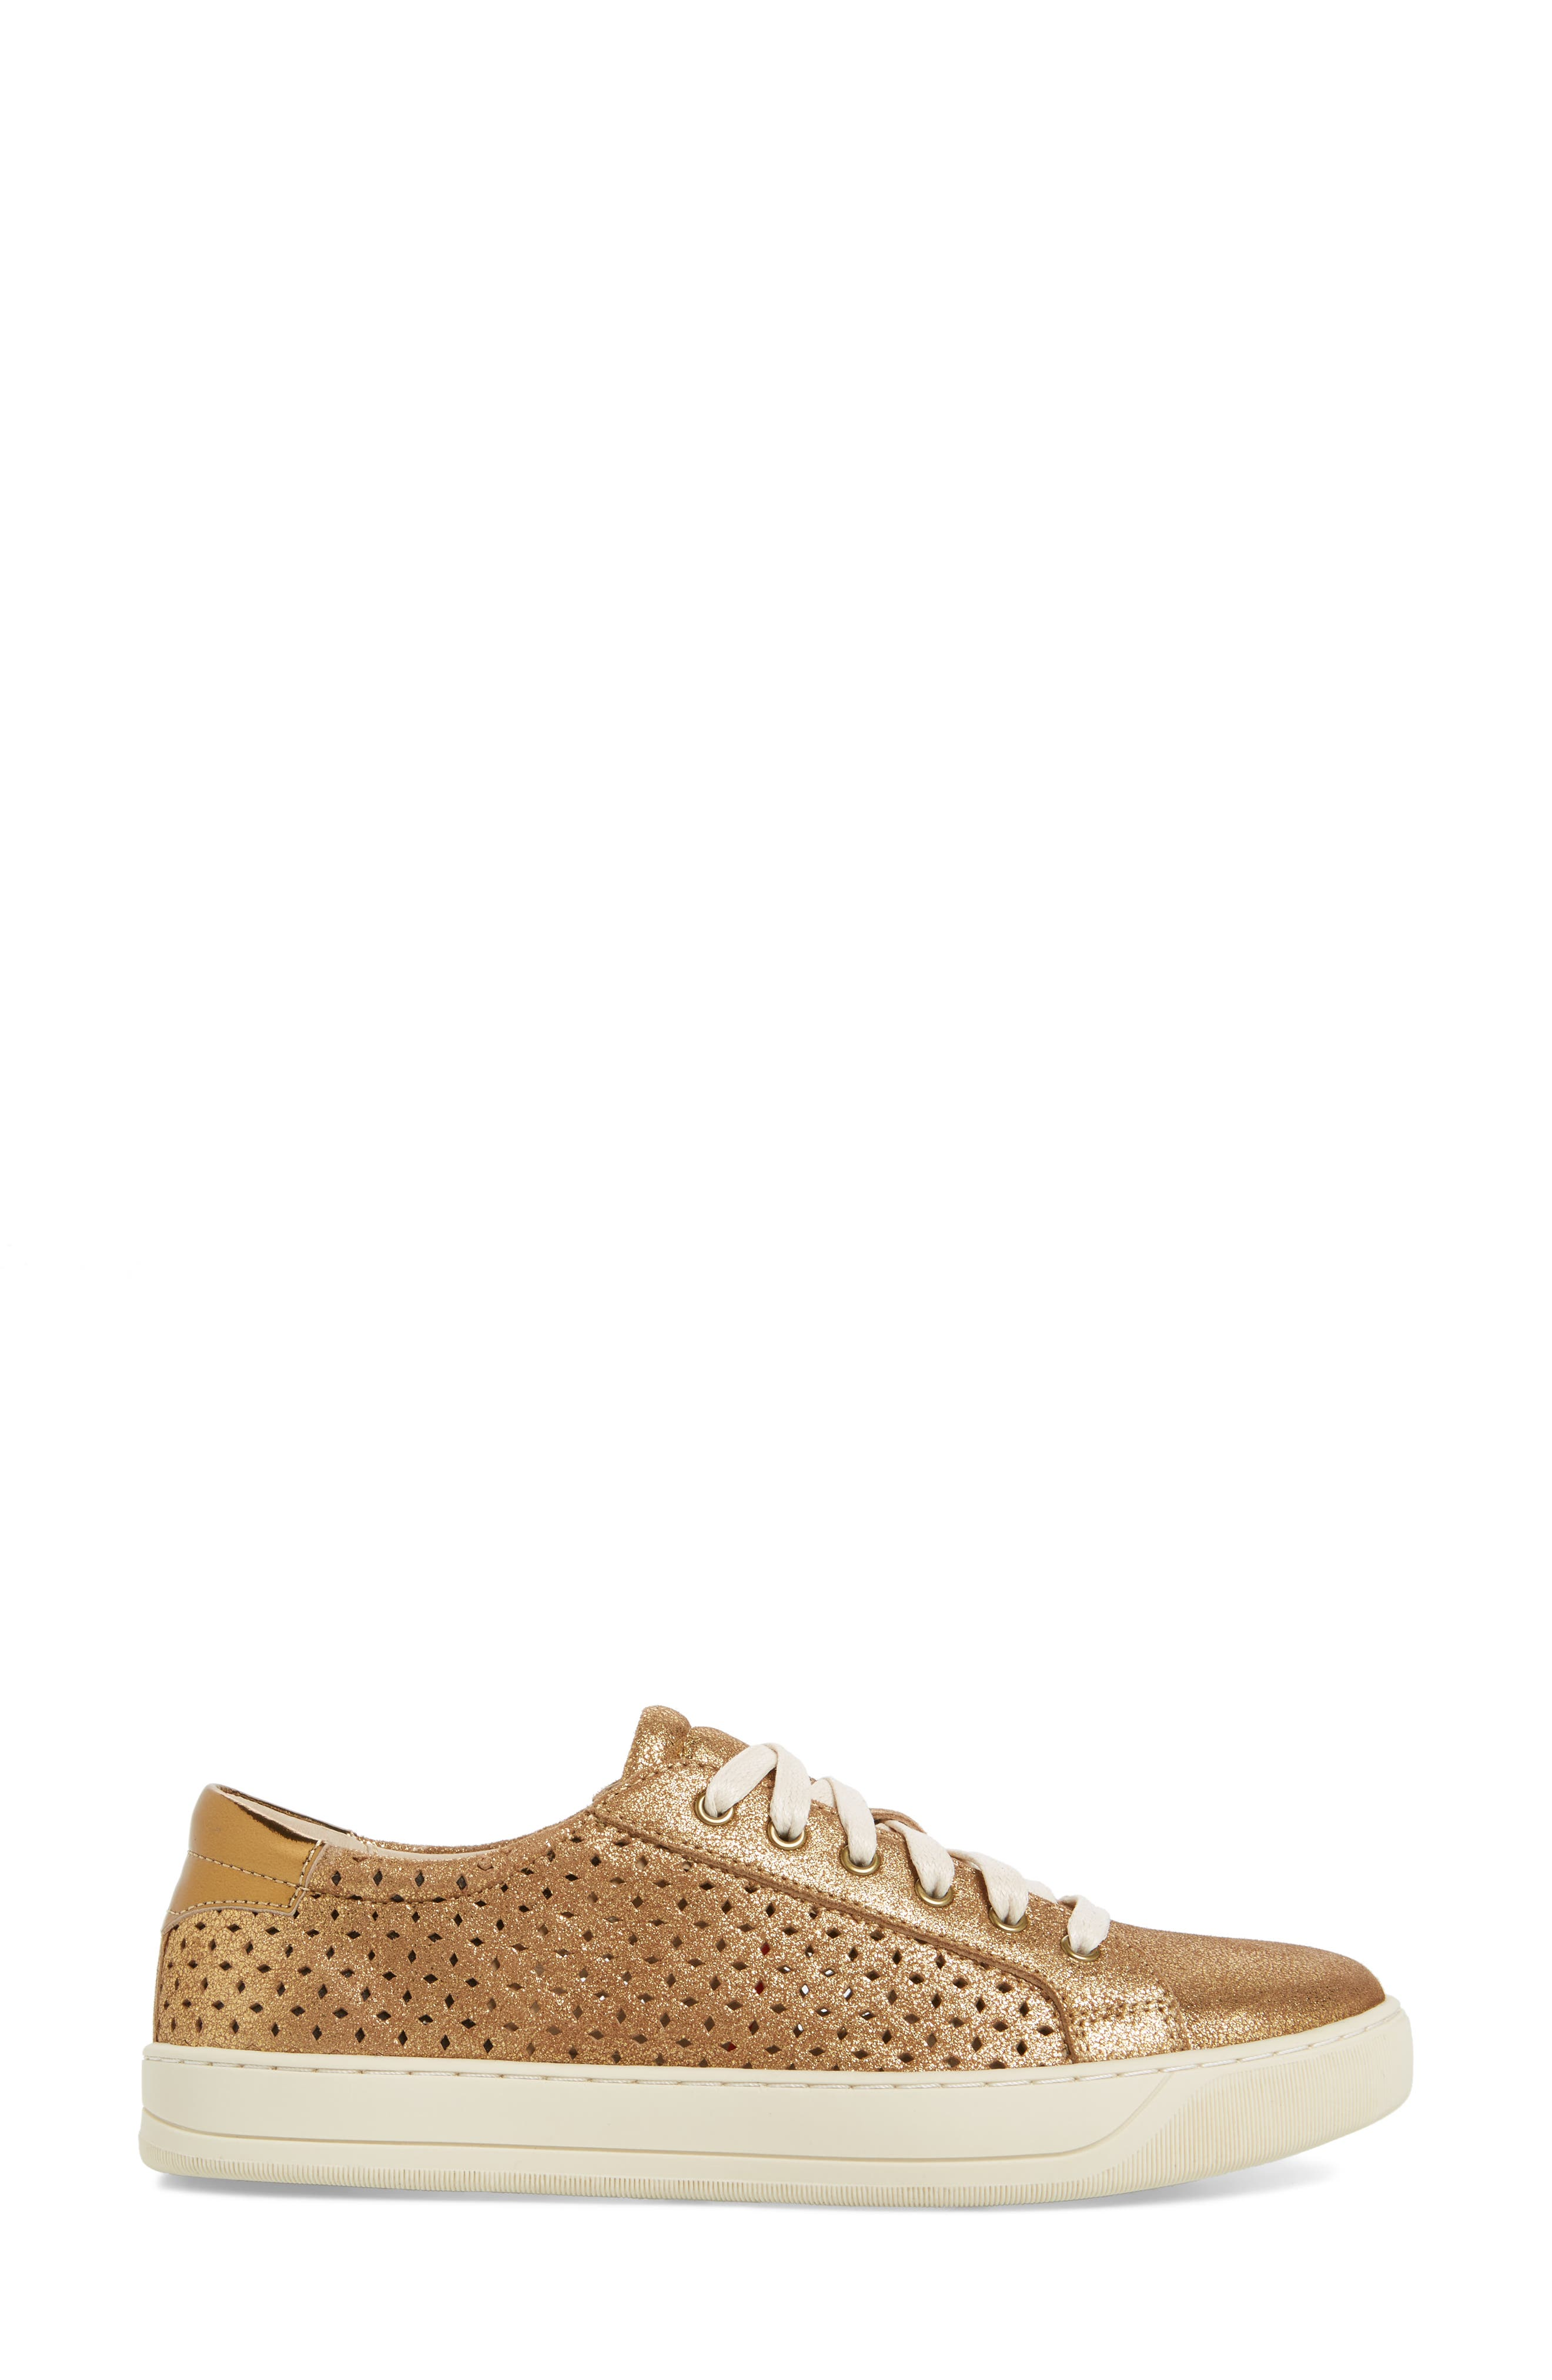 Emerson Perforated Sneaker,                             Alternate thumbnail 3, color,                             GOLD SUEDE